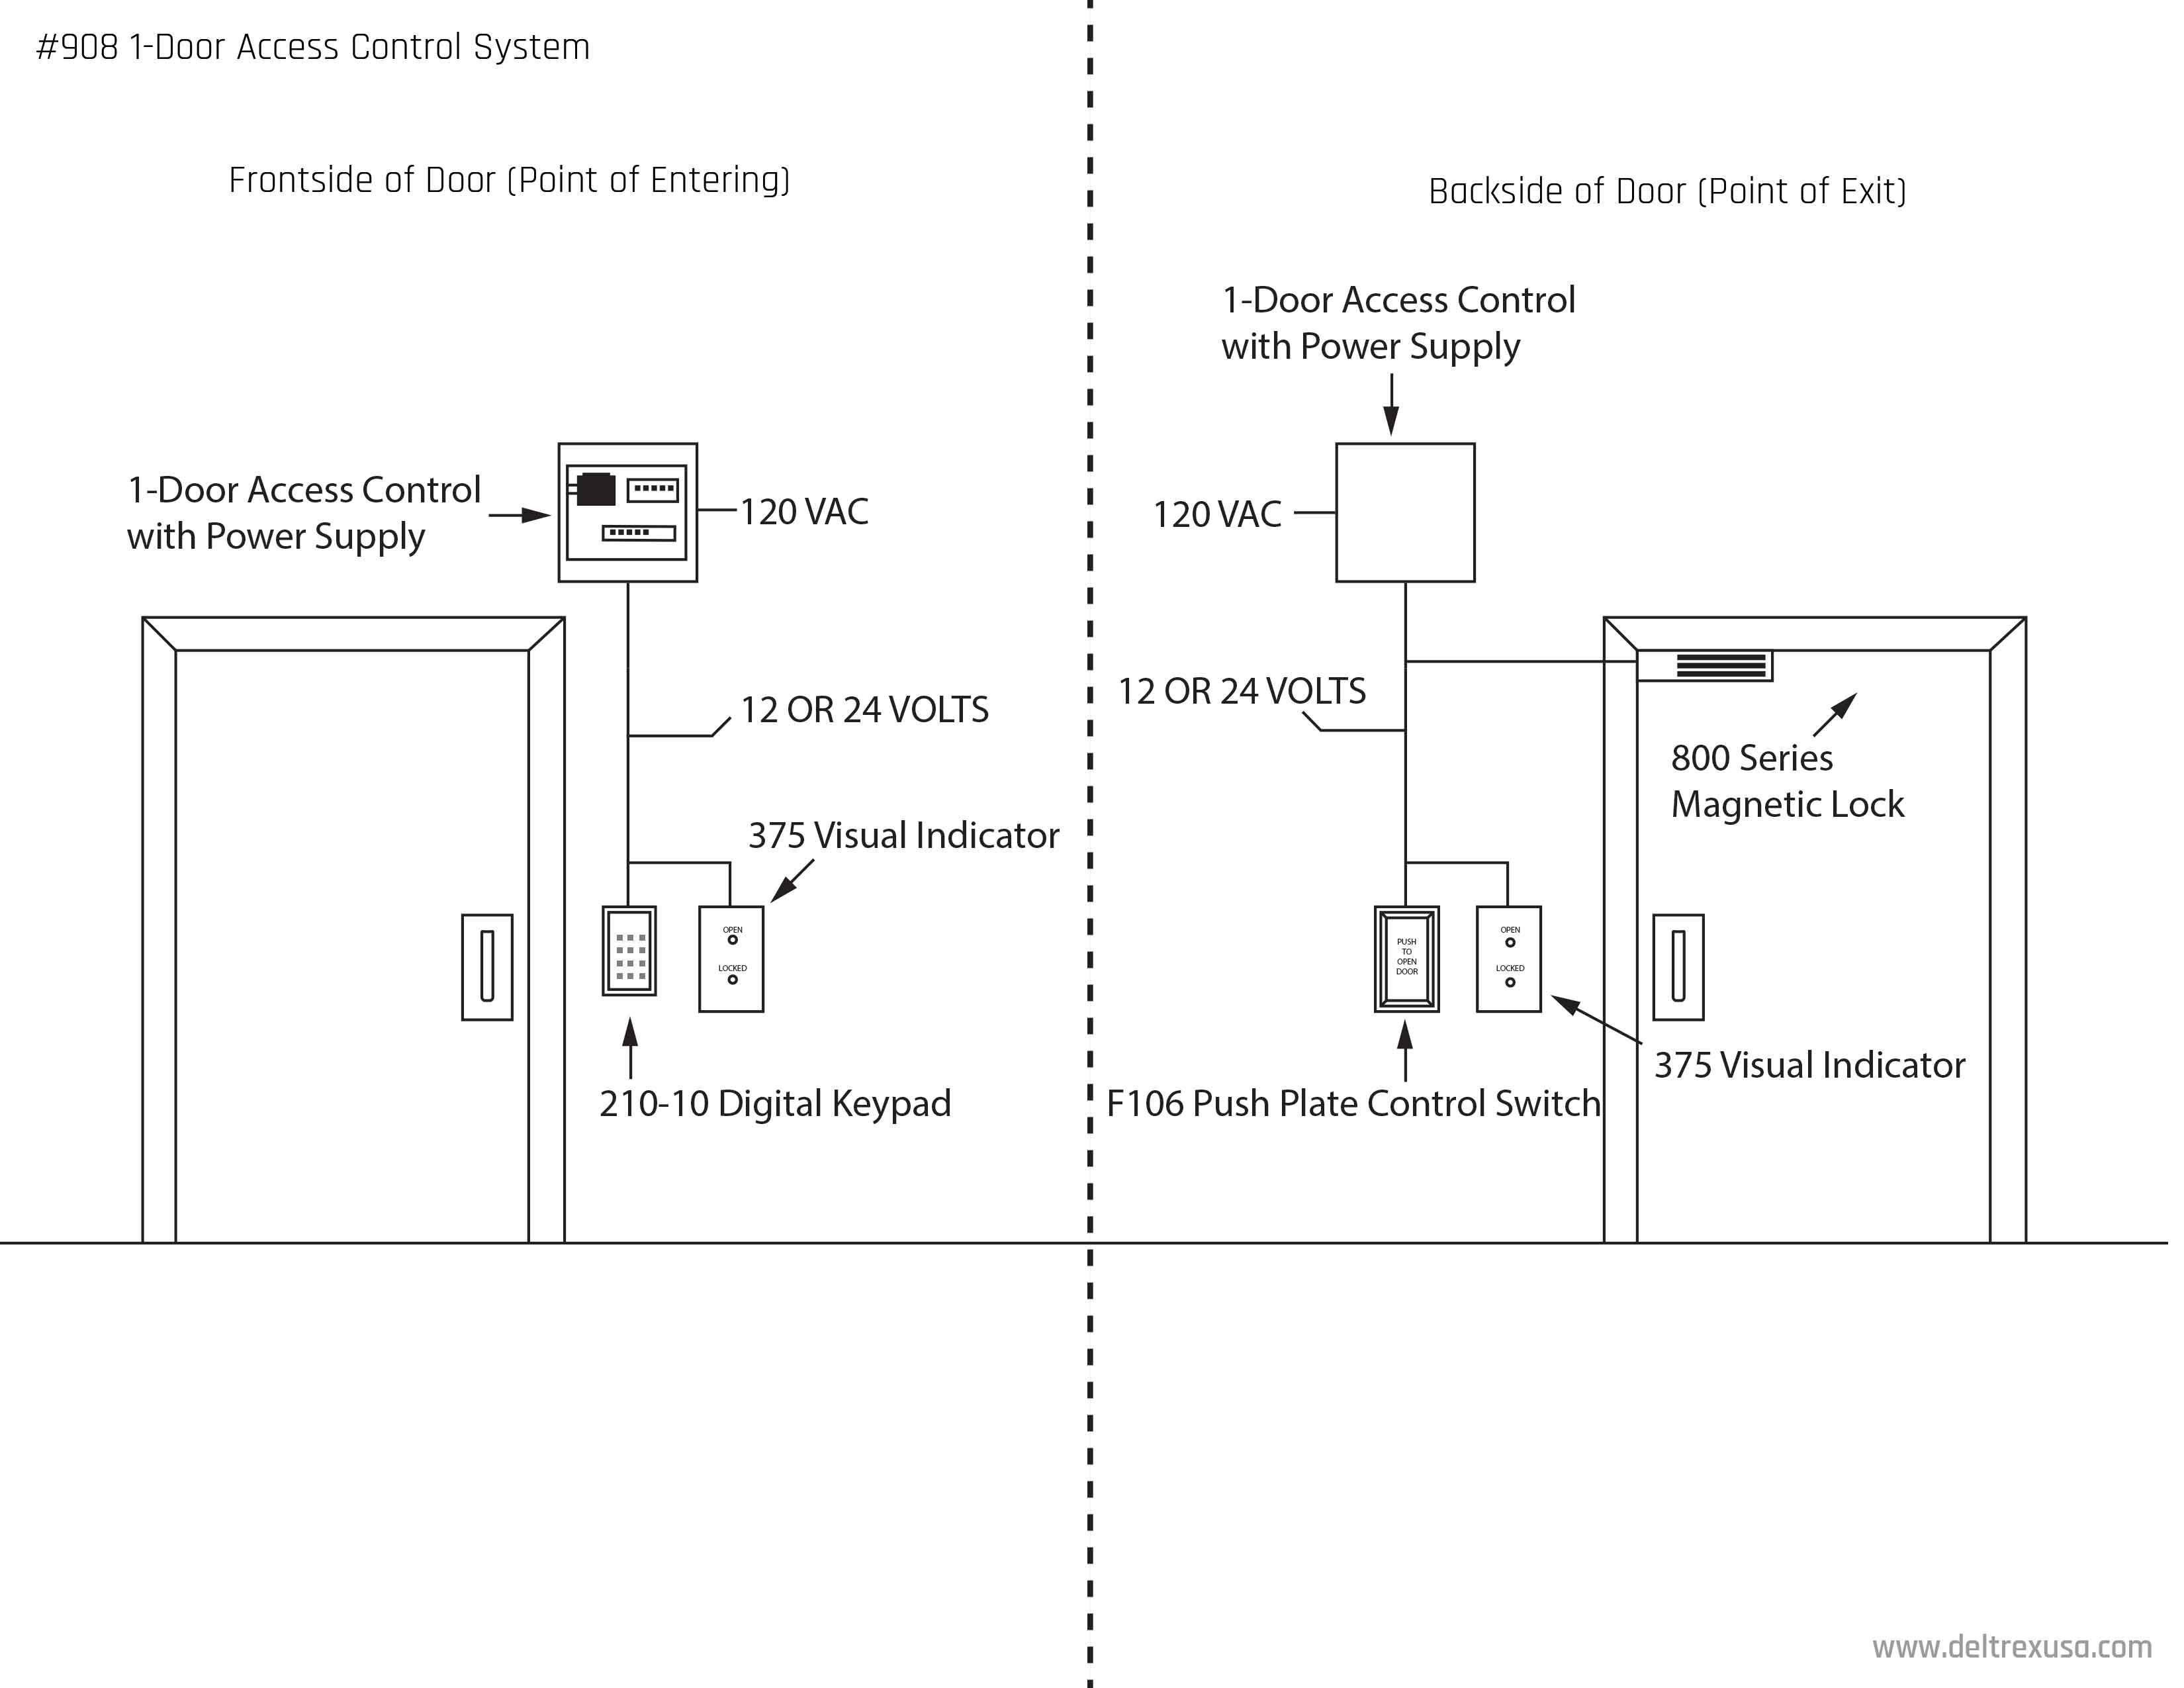 Awesome Wiring Diagram Of Door Access Control System Diagrams Digramssample Diagramimages Wiringdiagramsample Access Control System Access Control Diagram